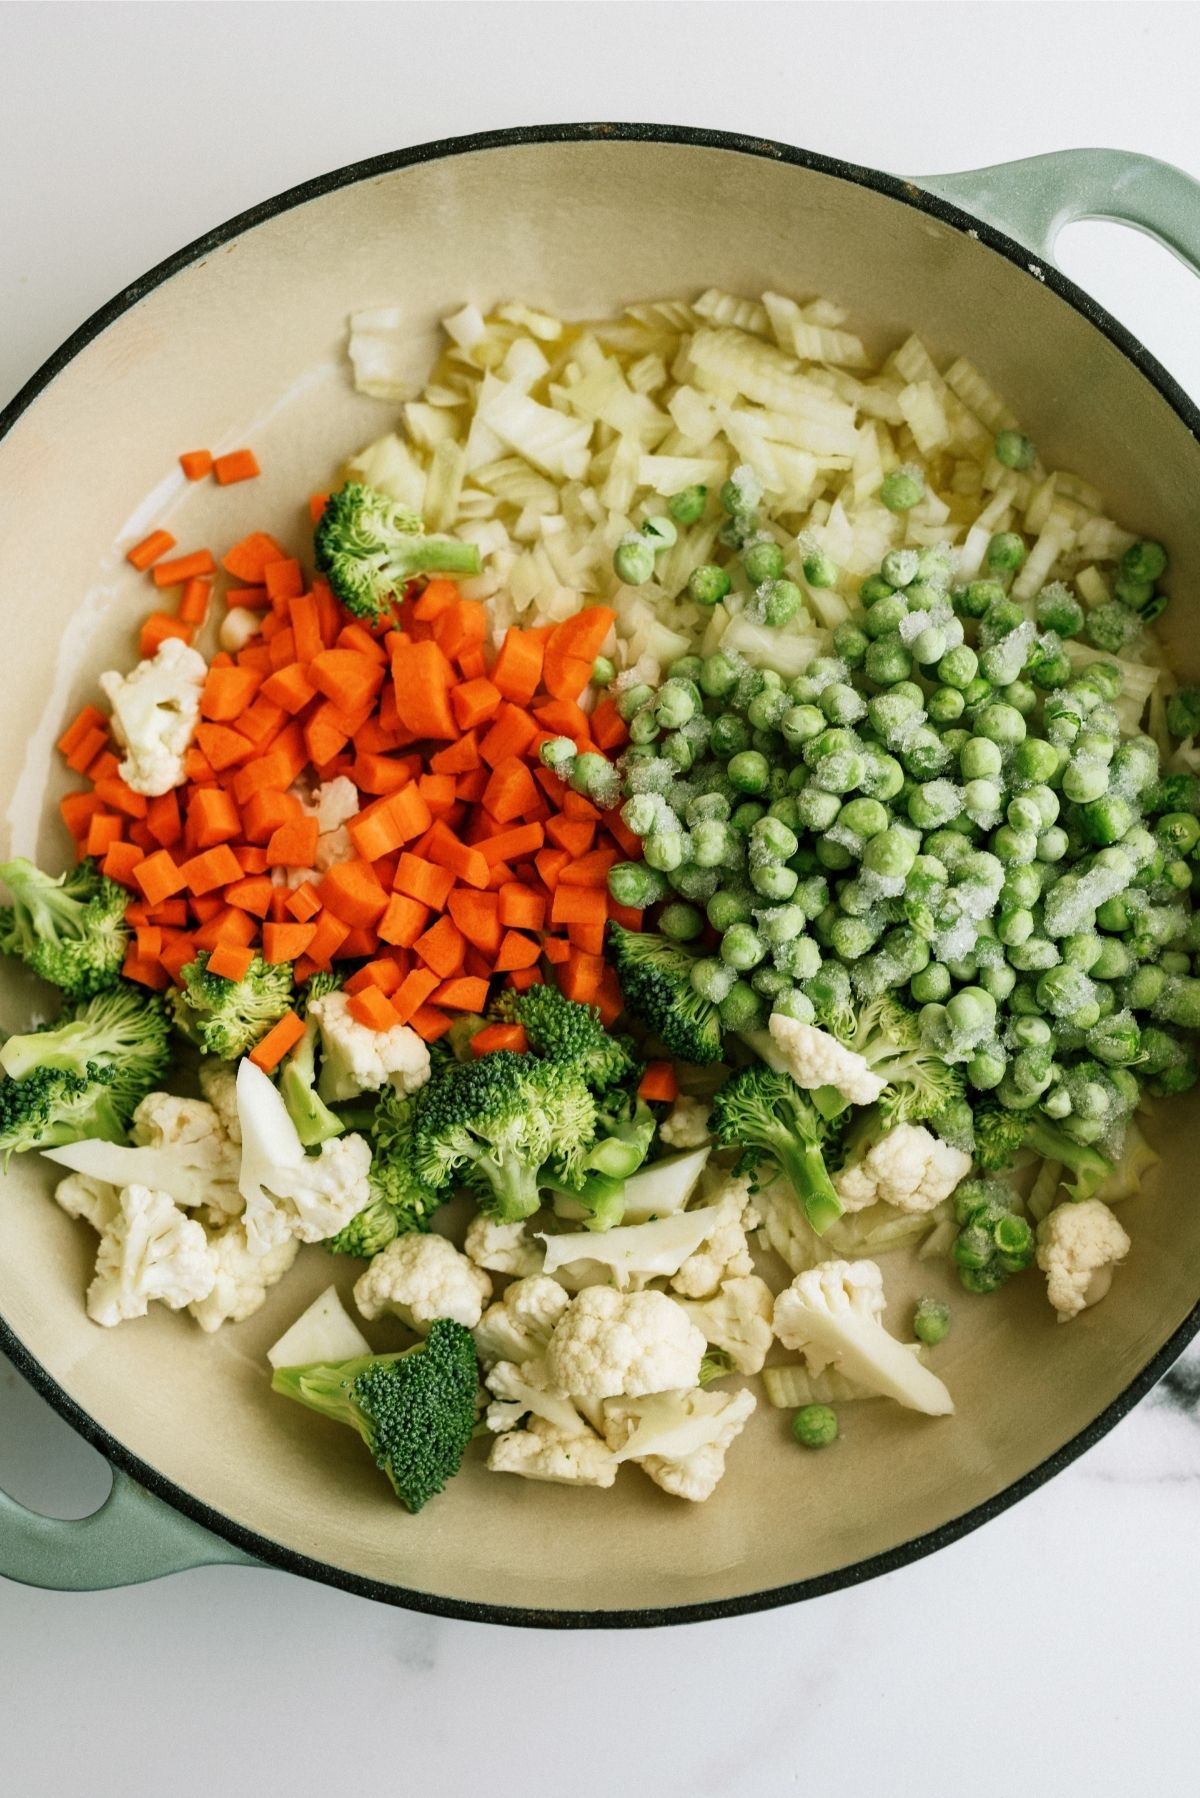 Mixed Vegetables in large pan